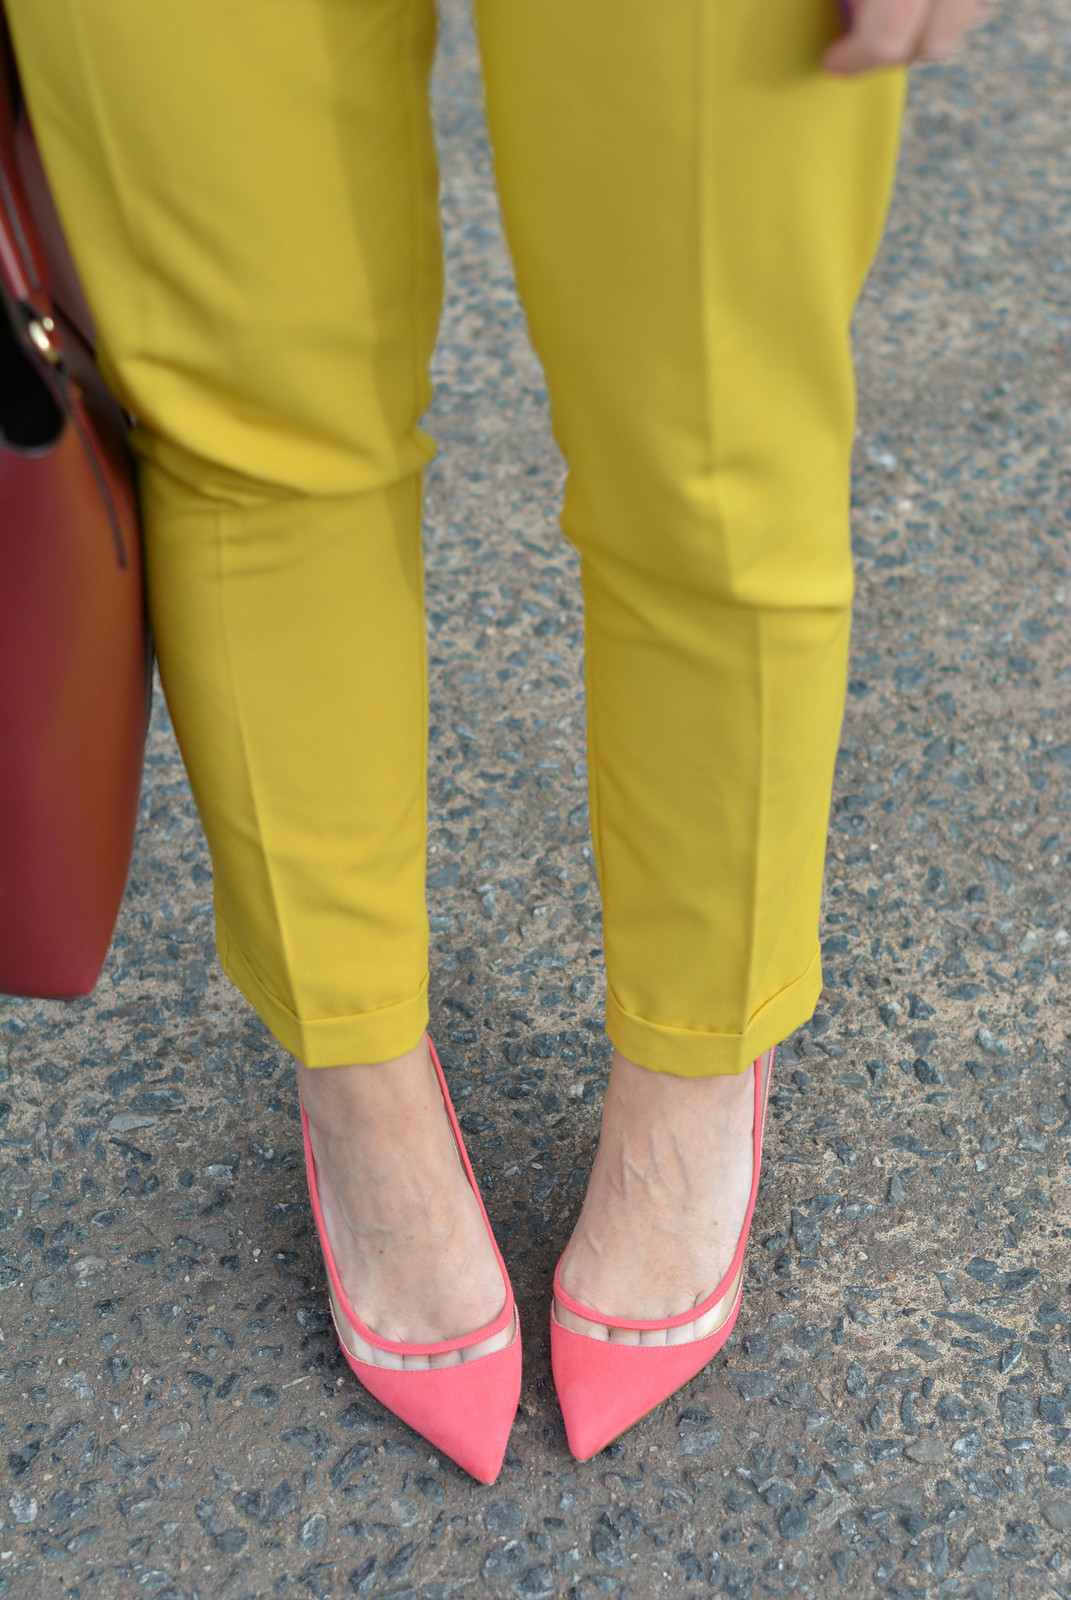 SS16 mustard yellow trousers, coral heels | Not Dressed As Lamb